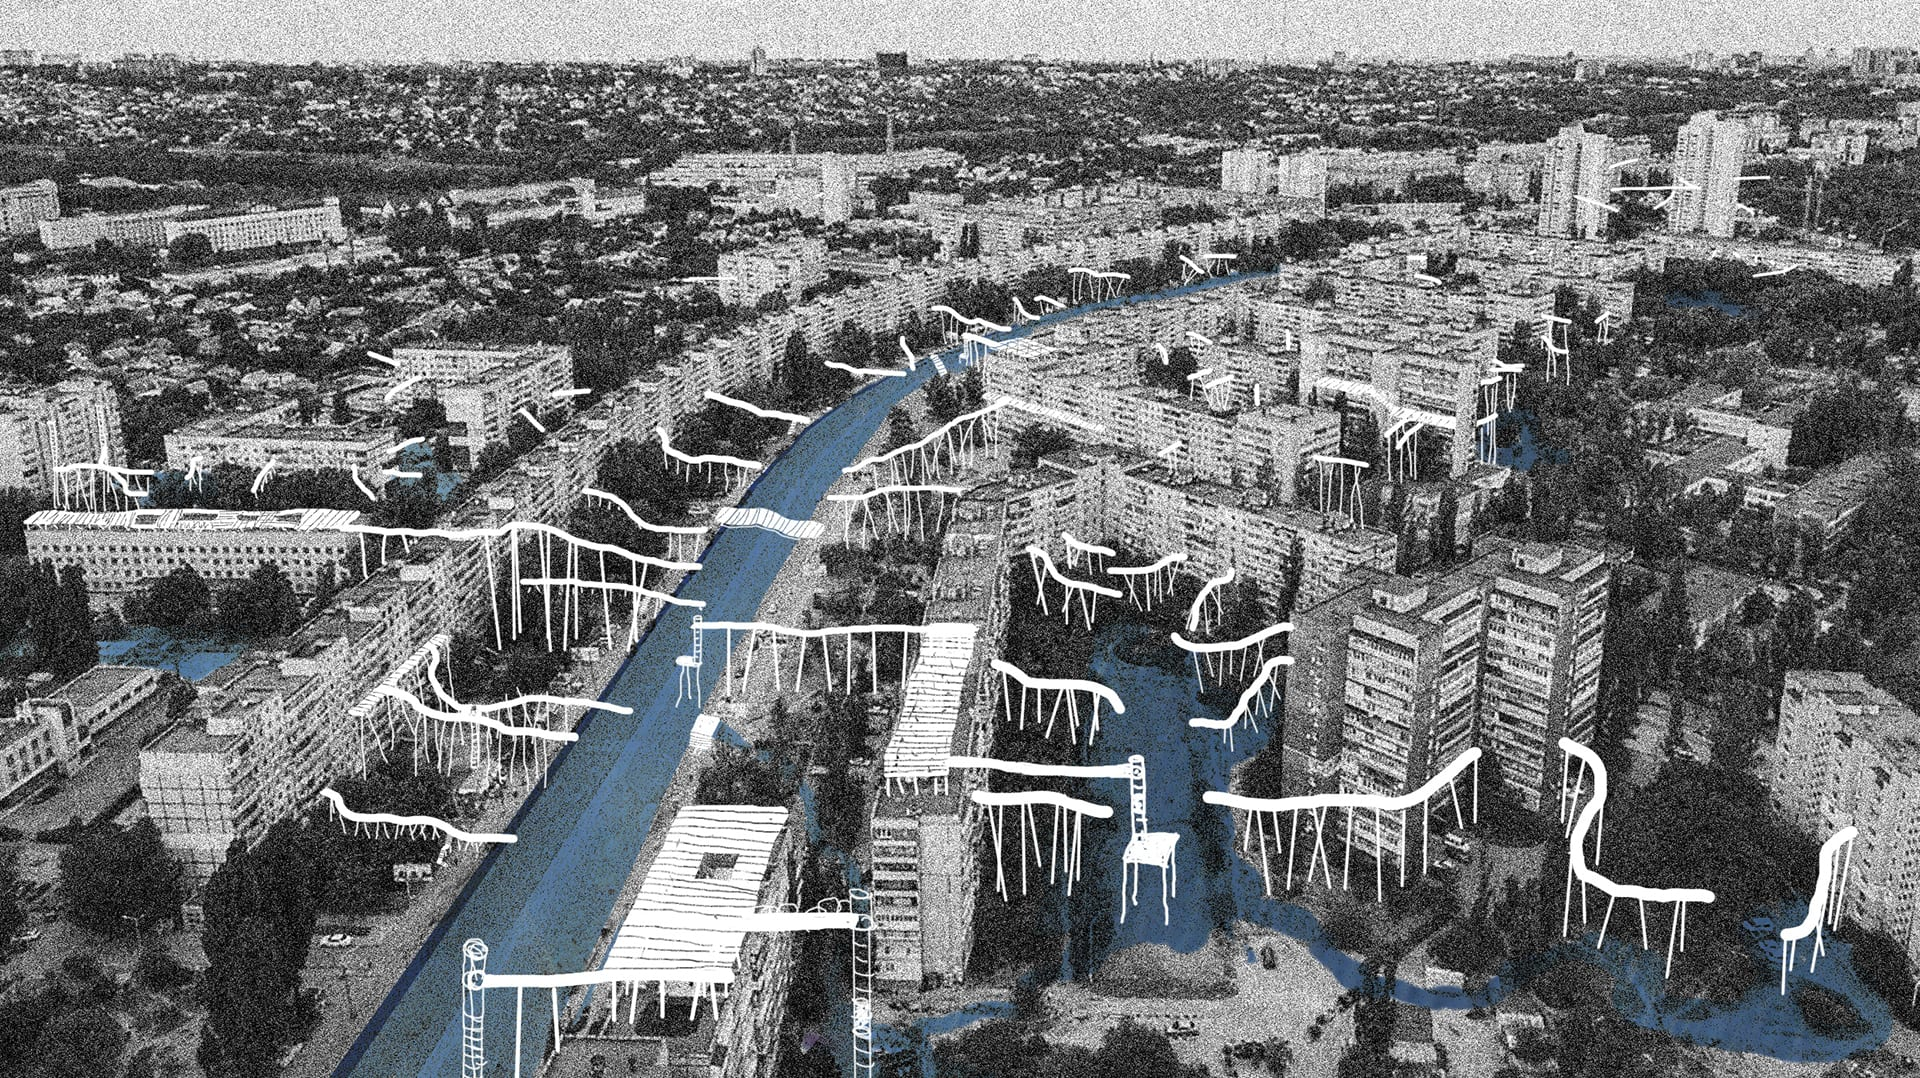 07_Post-post-collective city_Denys Zhdanov_Designer-architect_Master 2_The Fine Arts School of Bordeaux